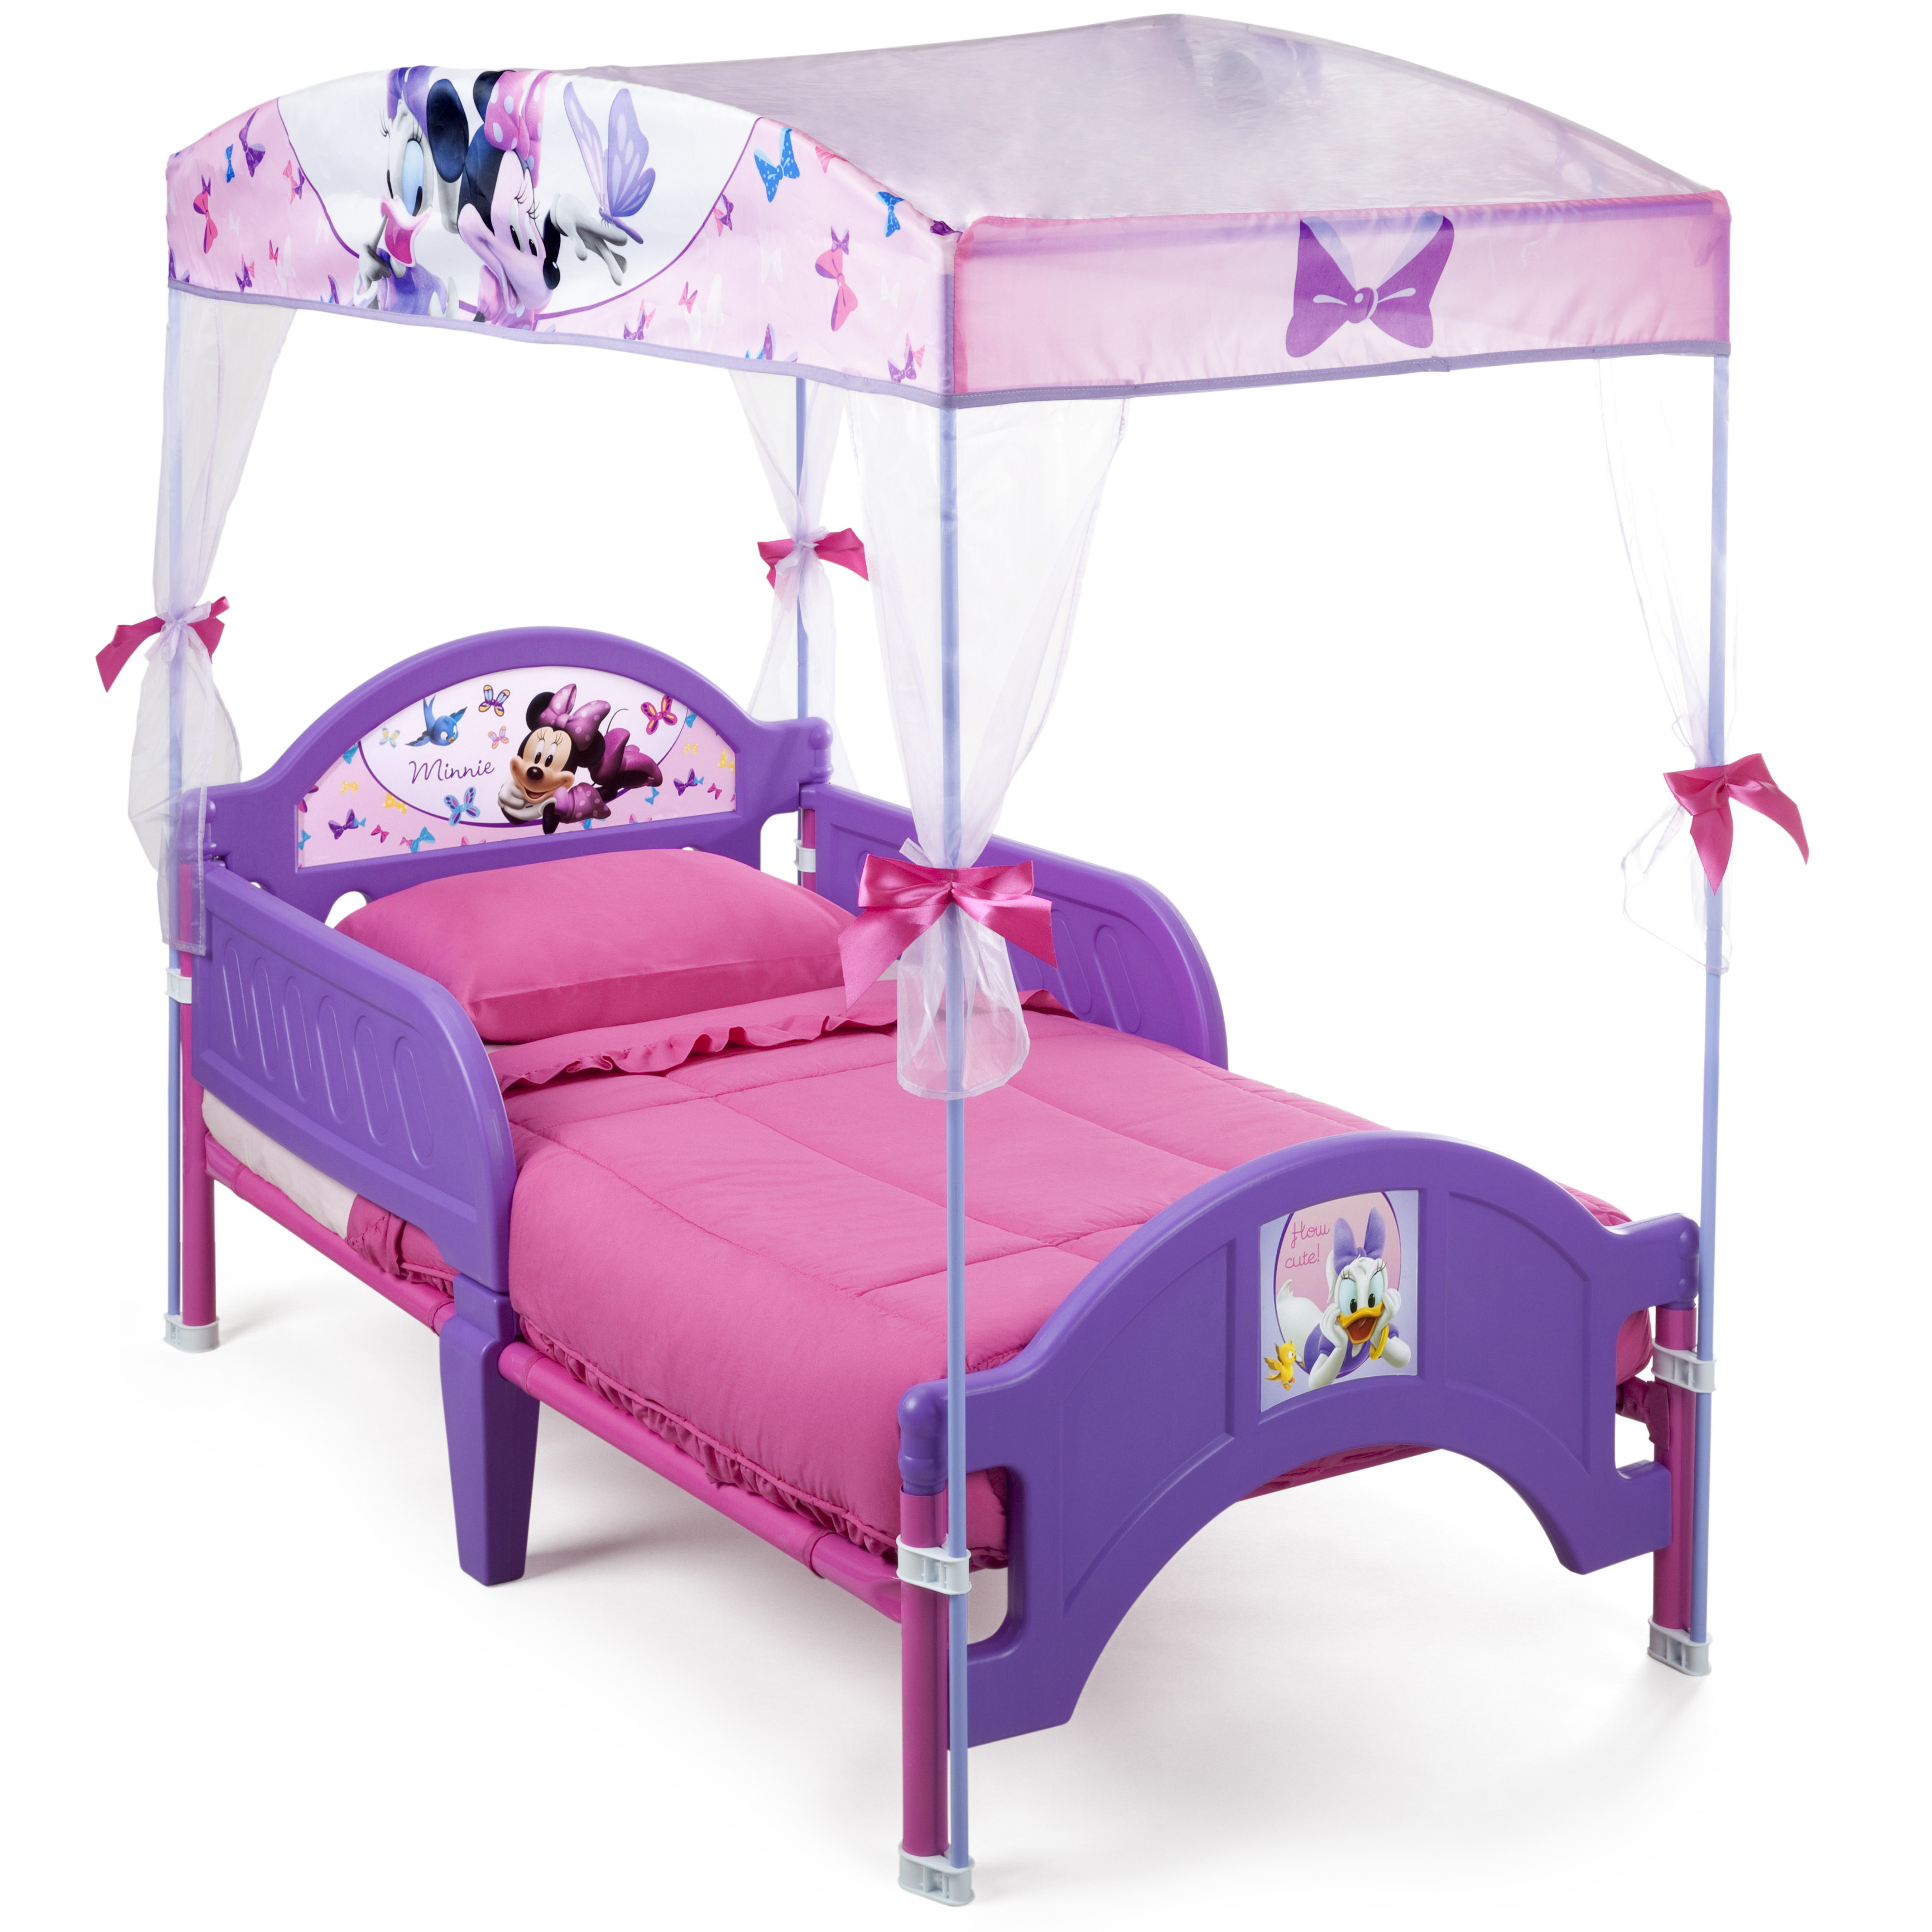 Disney or Nickelodeon Canopy or Tent Toddler Bed with Mattress